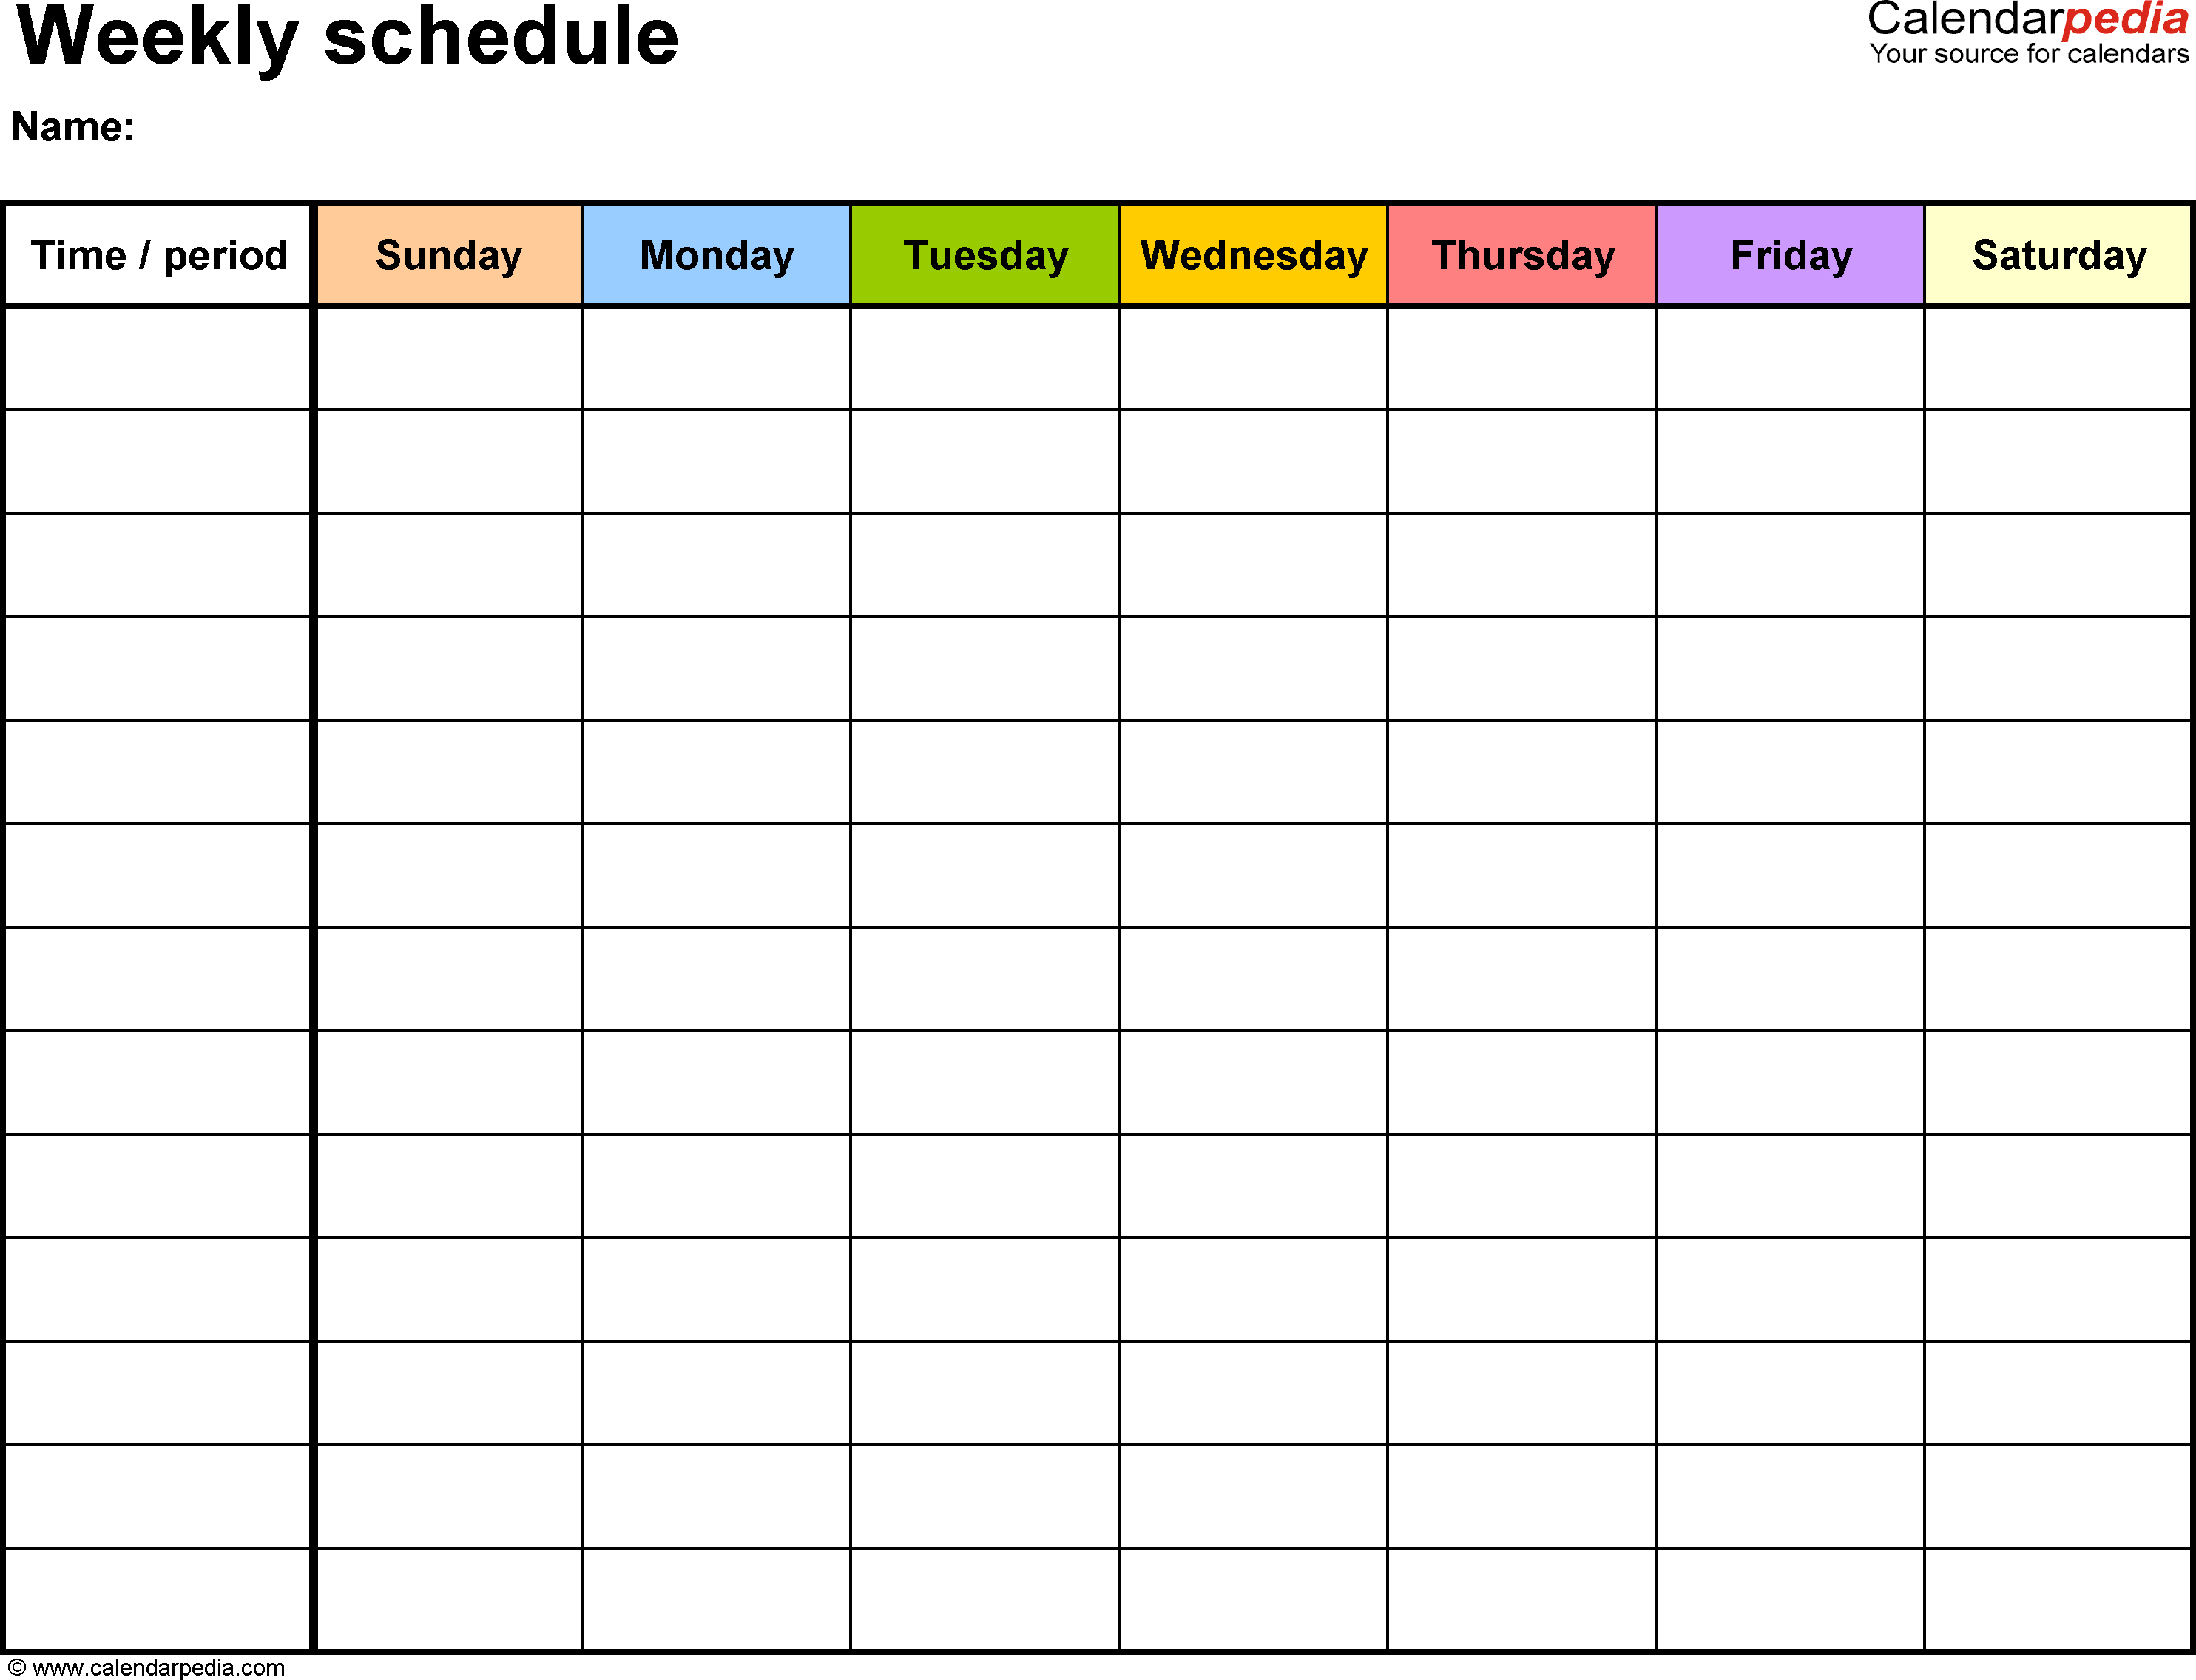 Free Weekly Schedule Templates For Word - 18 Templates - Free Printable Blank Work Schedules